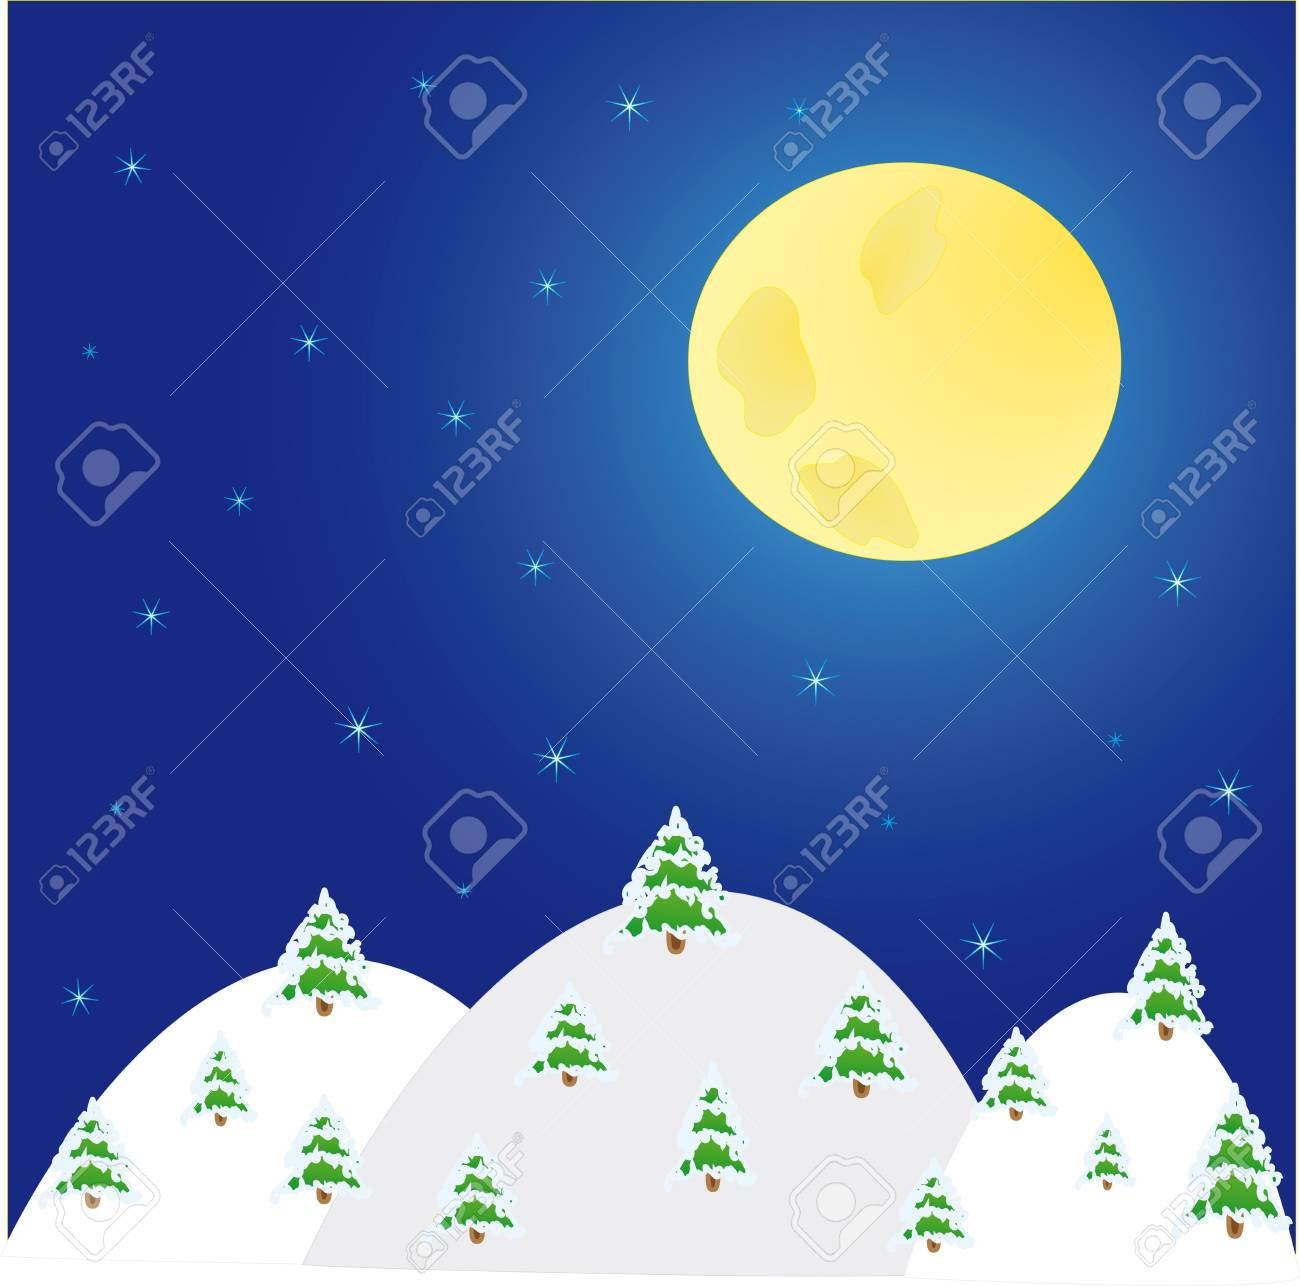 night winter landscape with  trees and  moon Stock Vector - 11552312